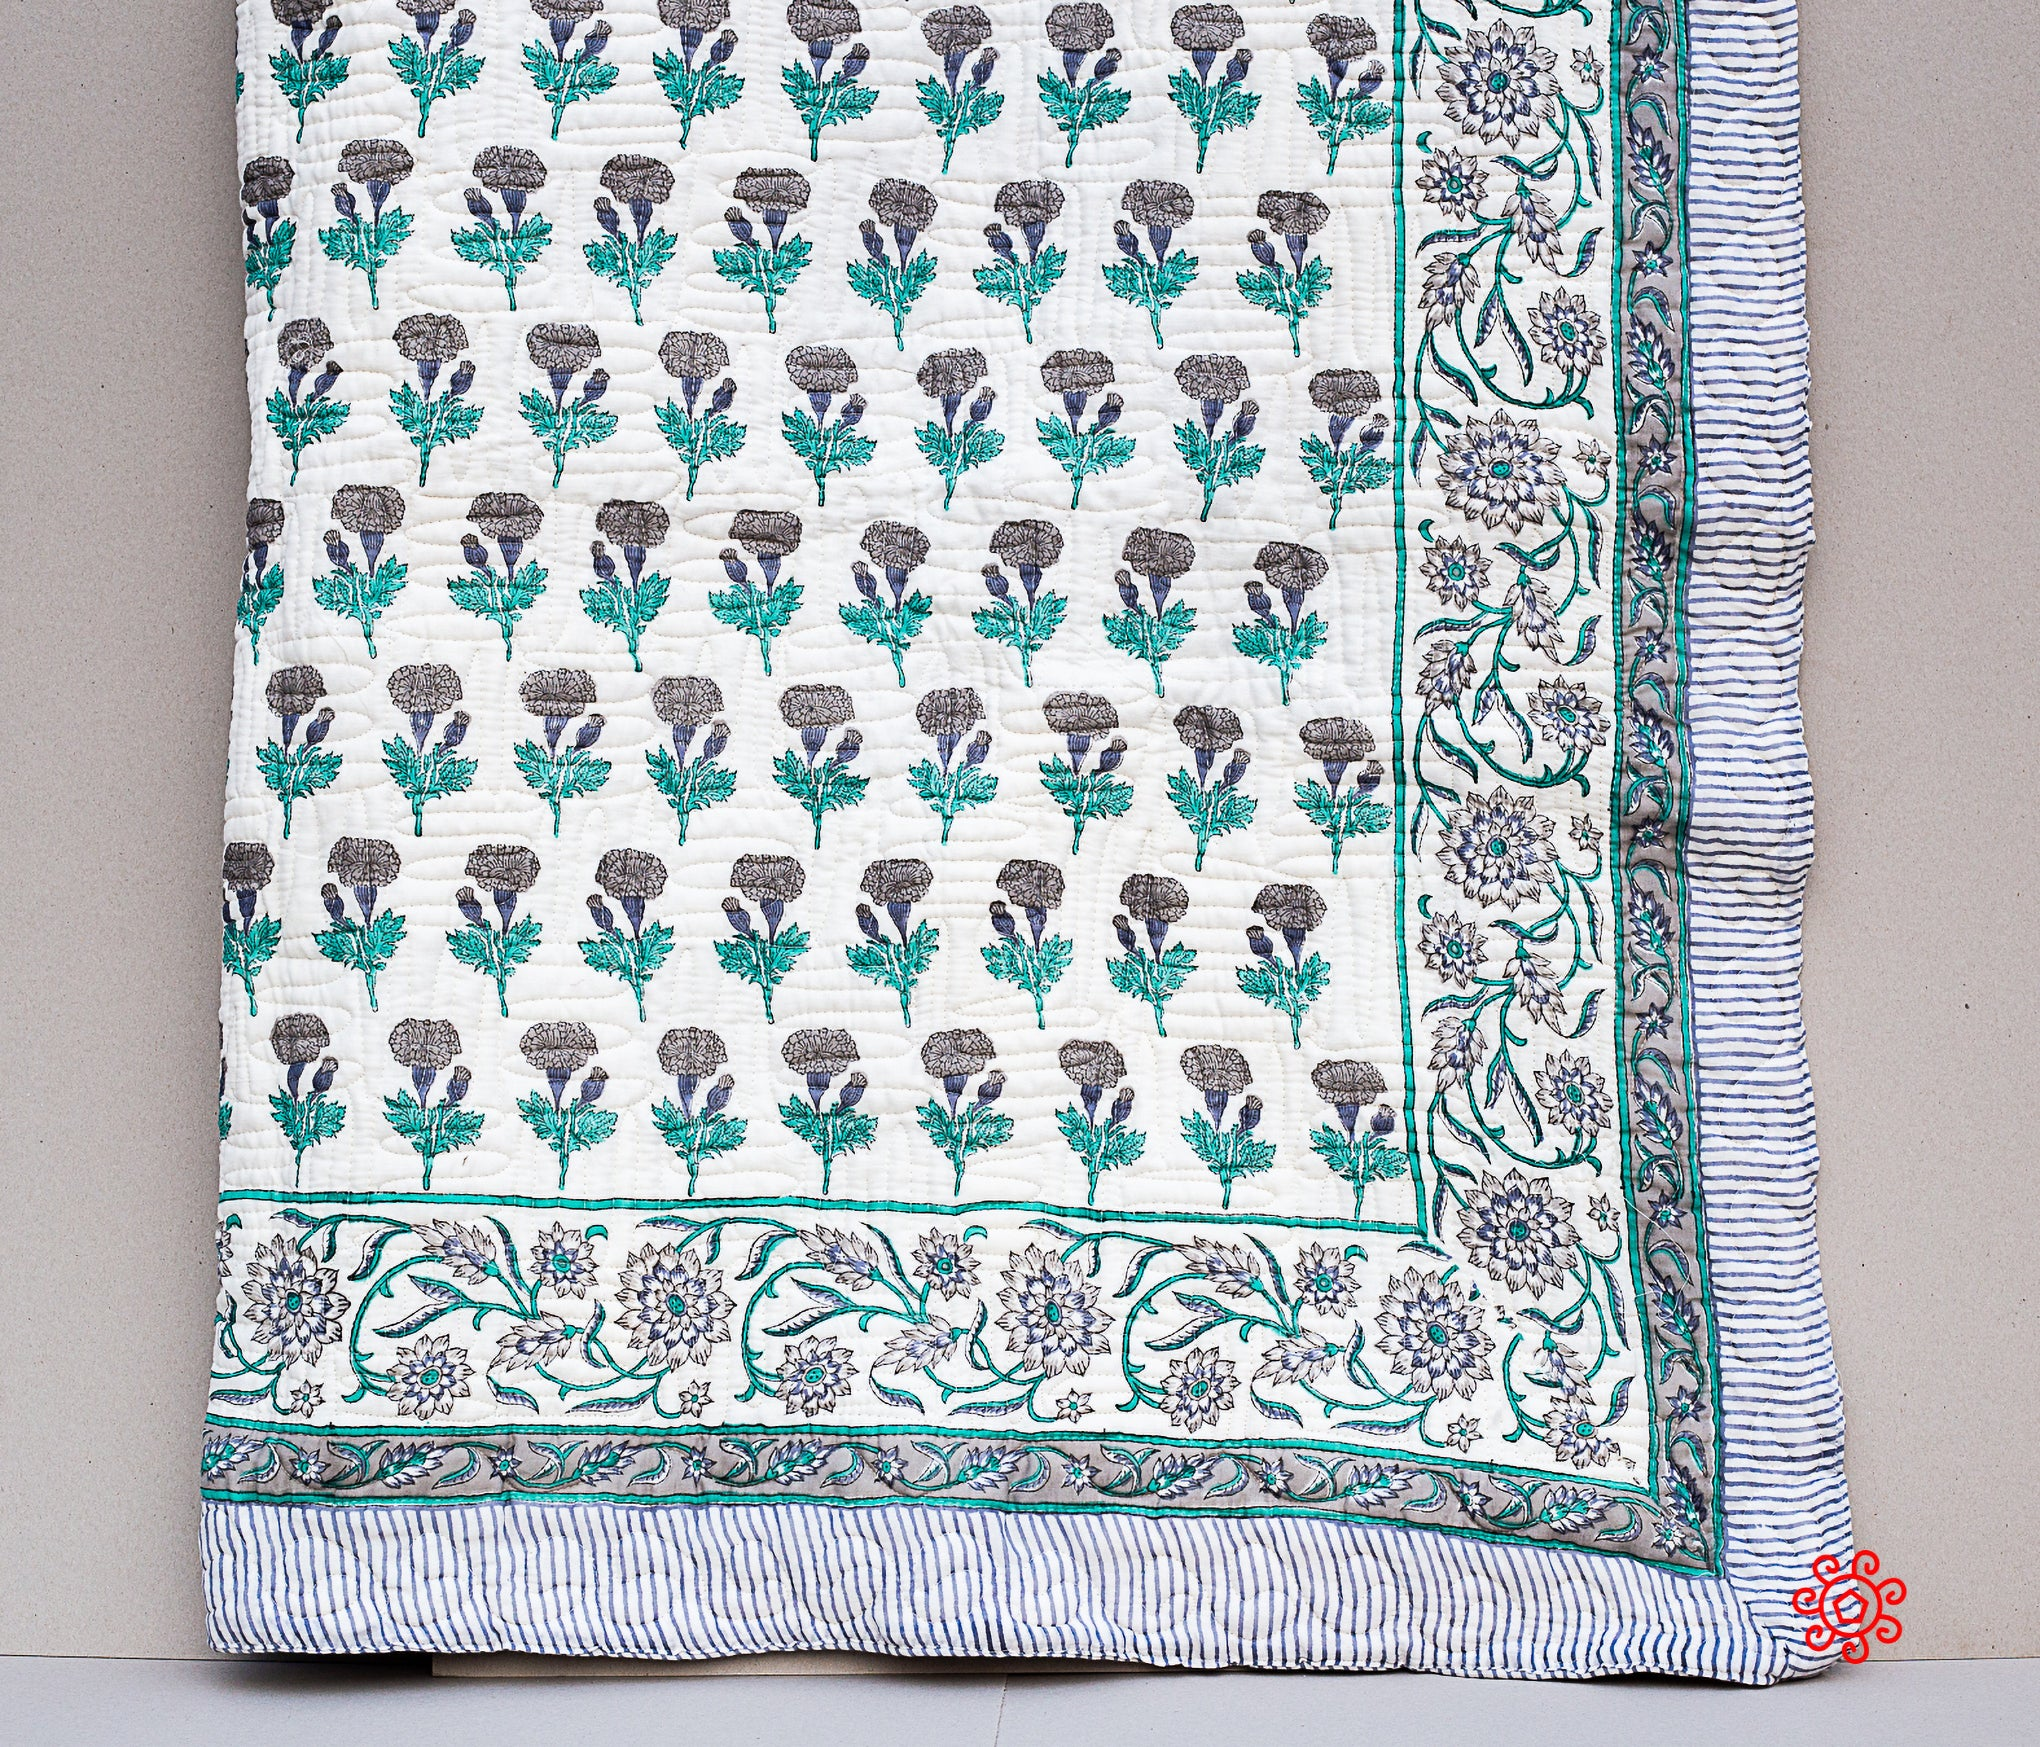 All Season Handmade Twin Quilt, Jaipuri Block printed, Cotton, Queen Bedspread, Cotton Throw, Quilted Bedcover, Room Decor, Gray